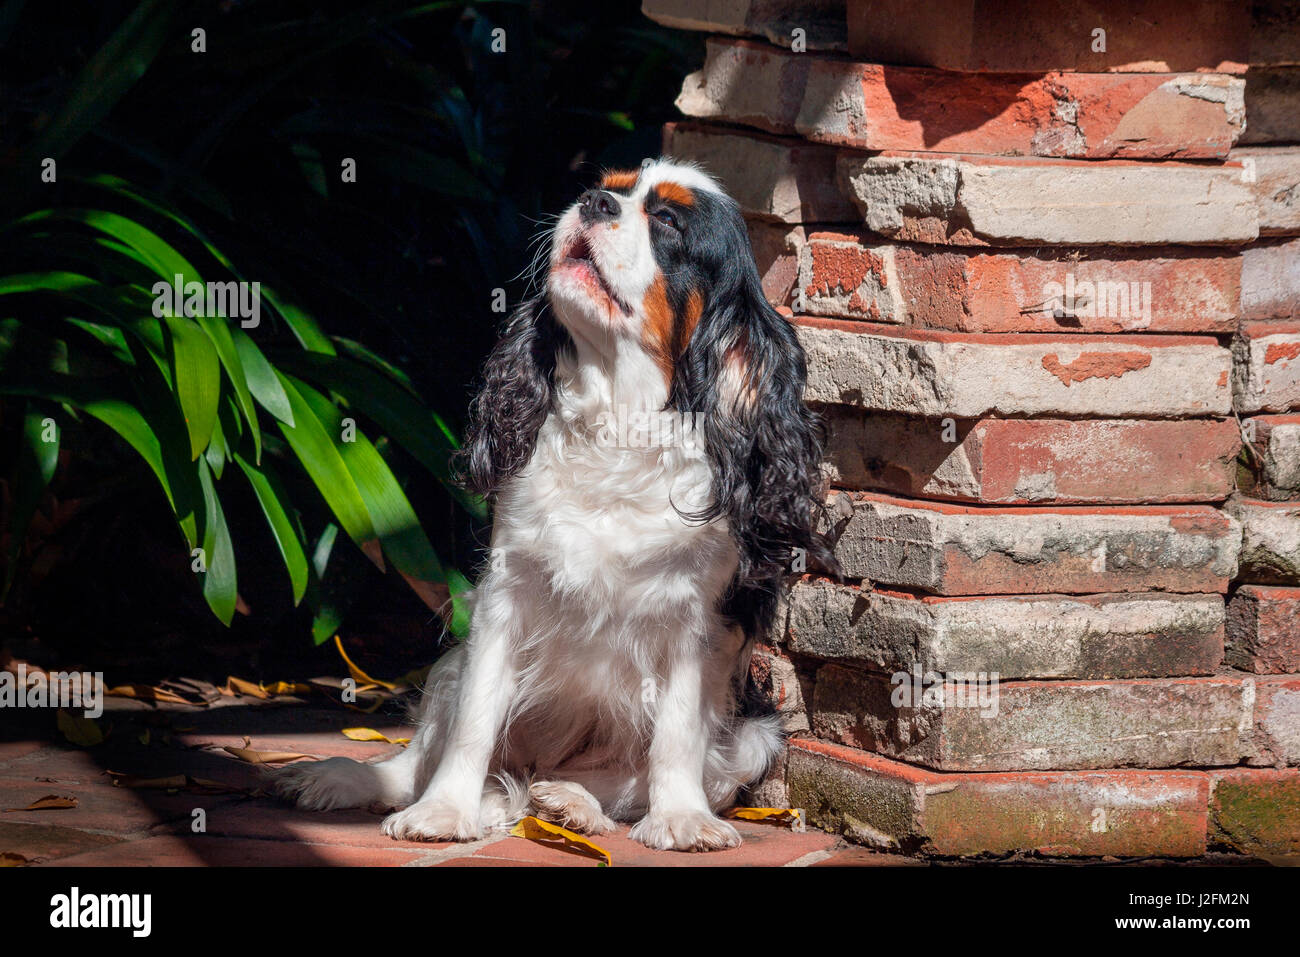 Cavalier King Charles Spaniel puppy - Stock Image